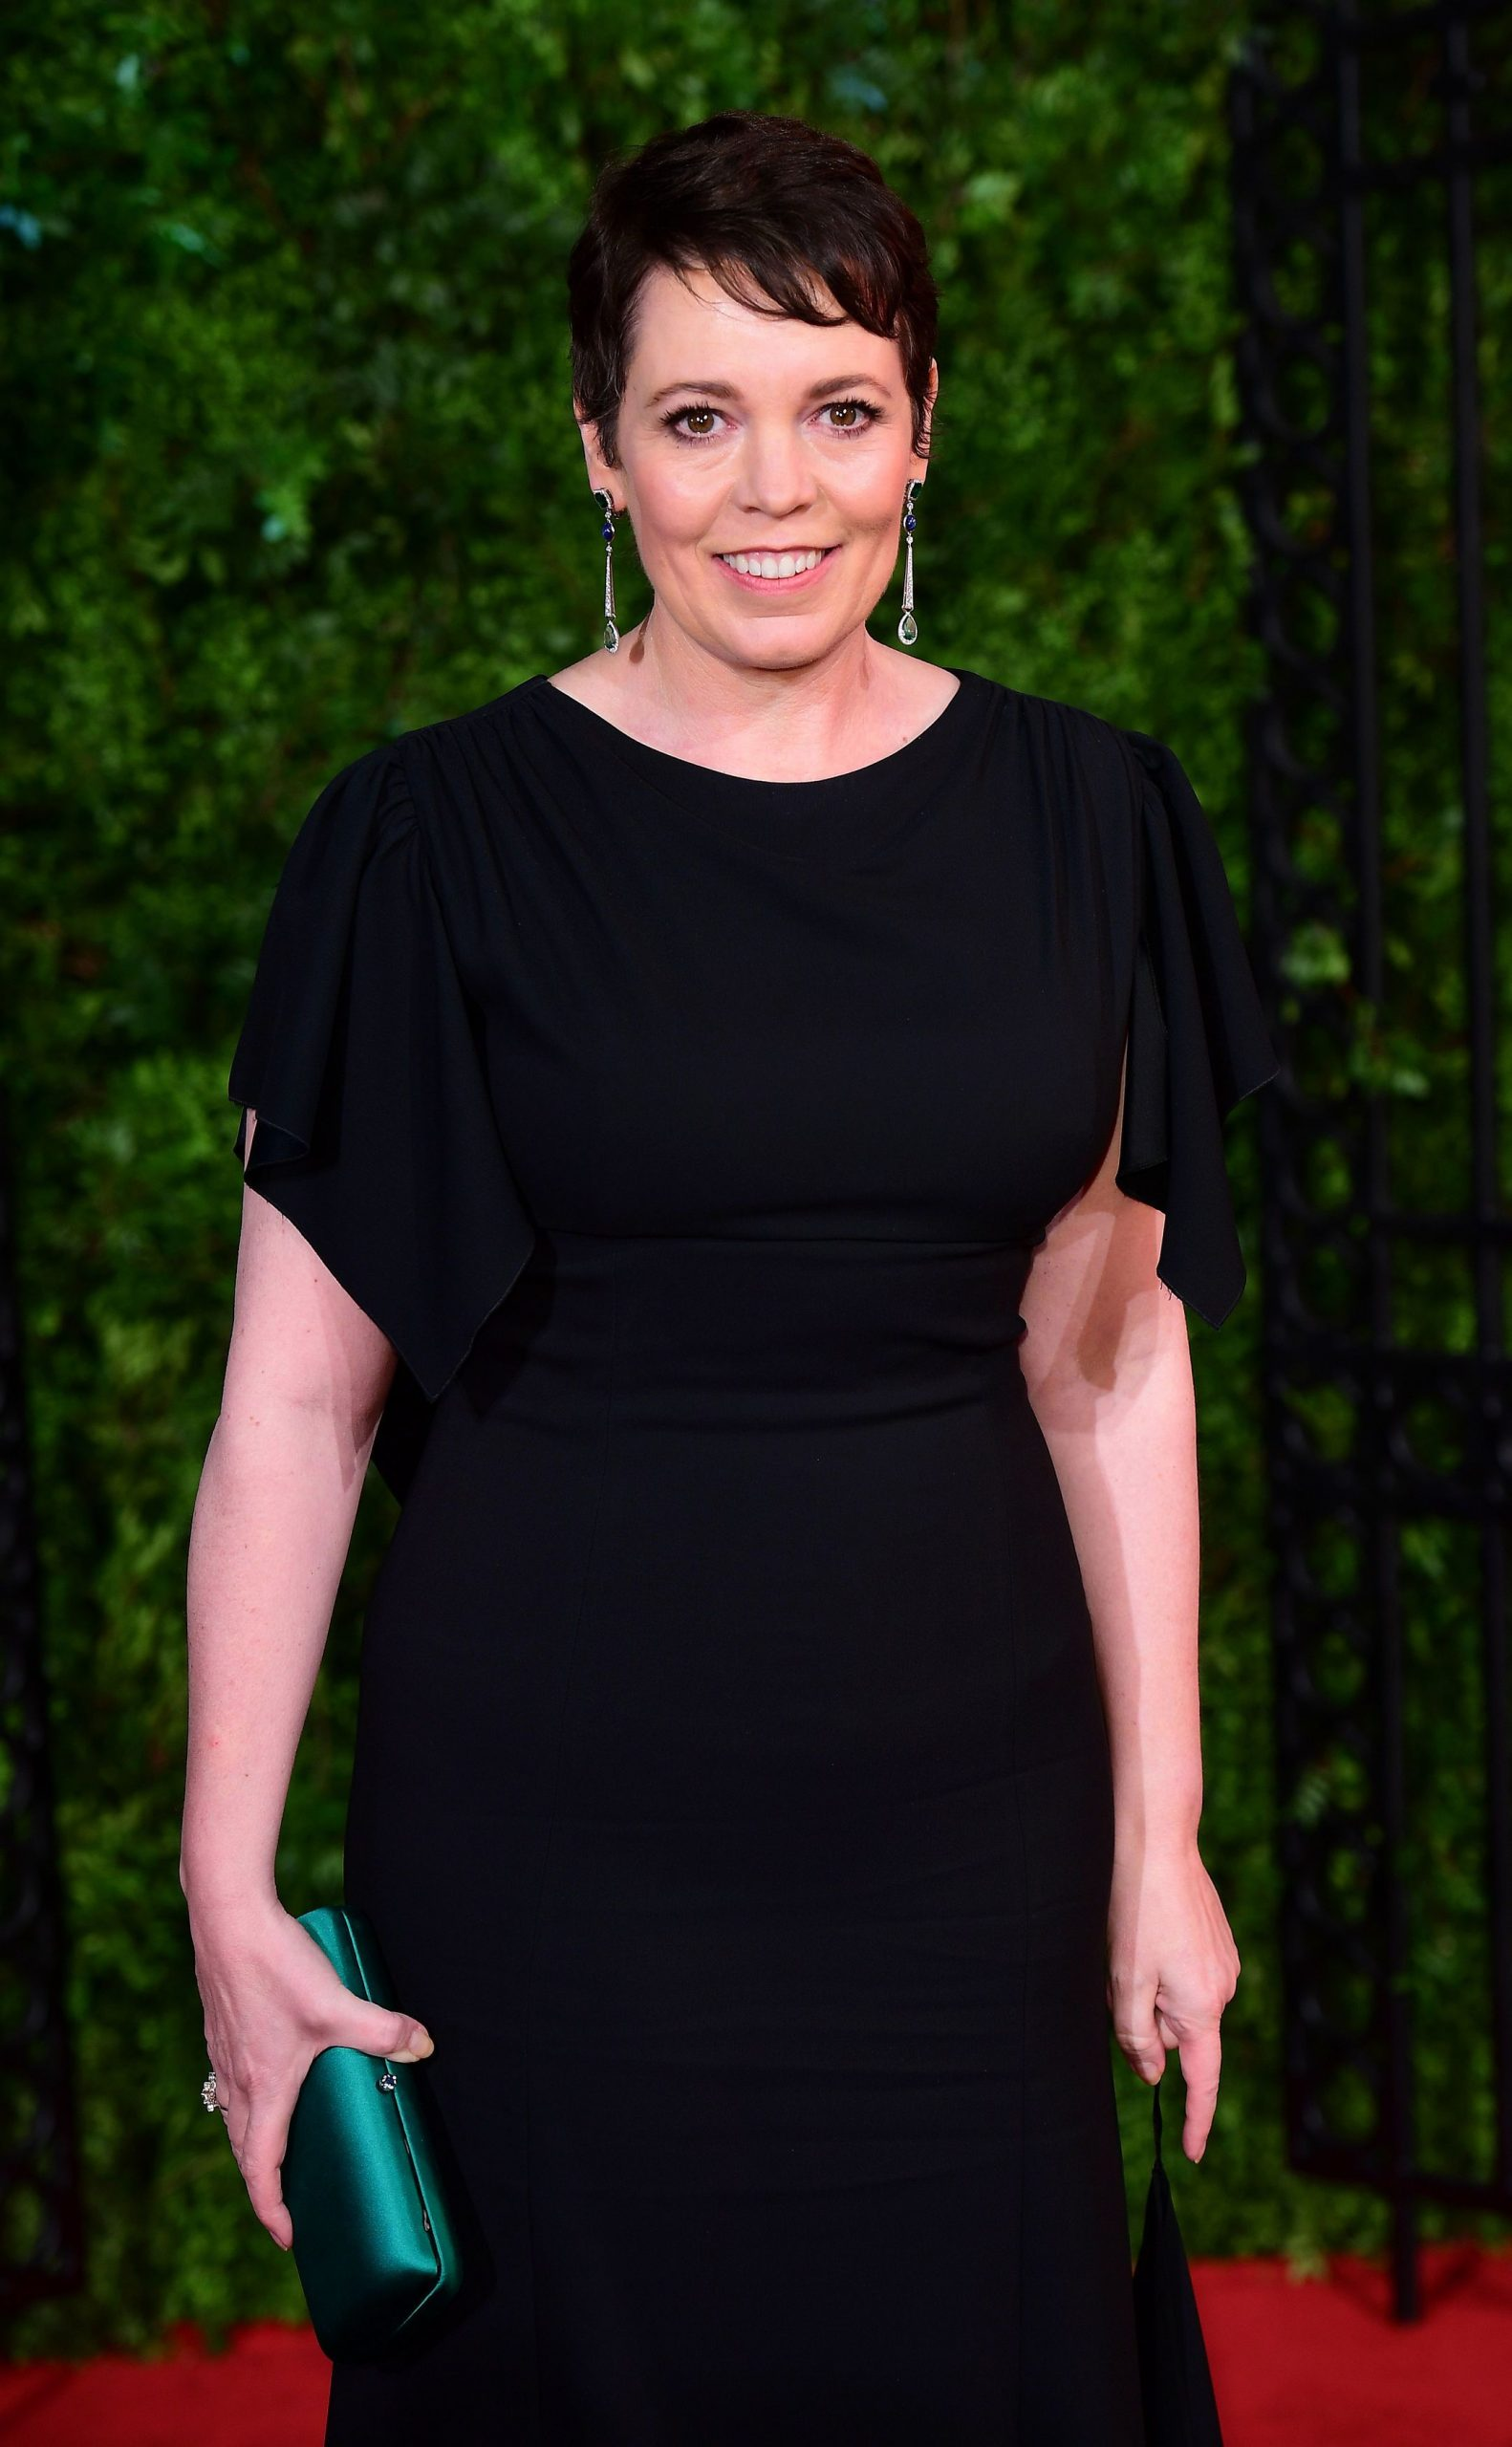 Olivia Colman The Crown Season 3 London Premiere